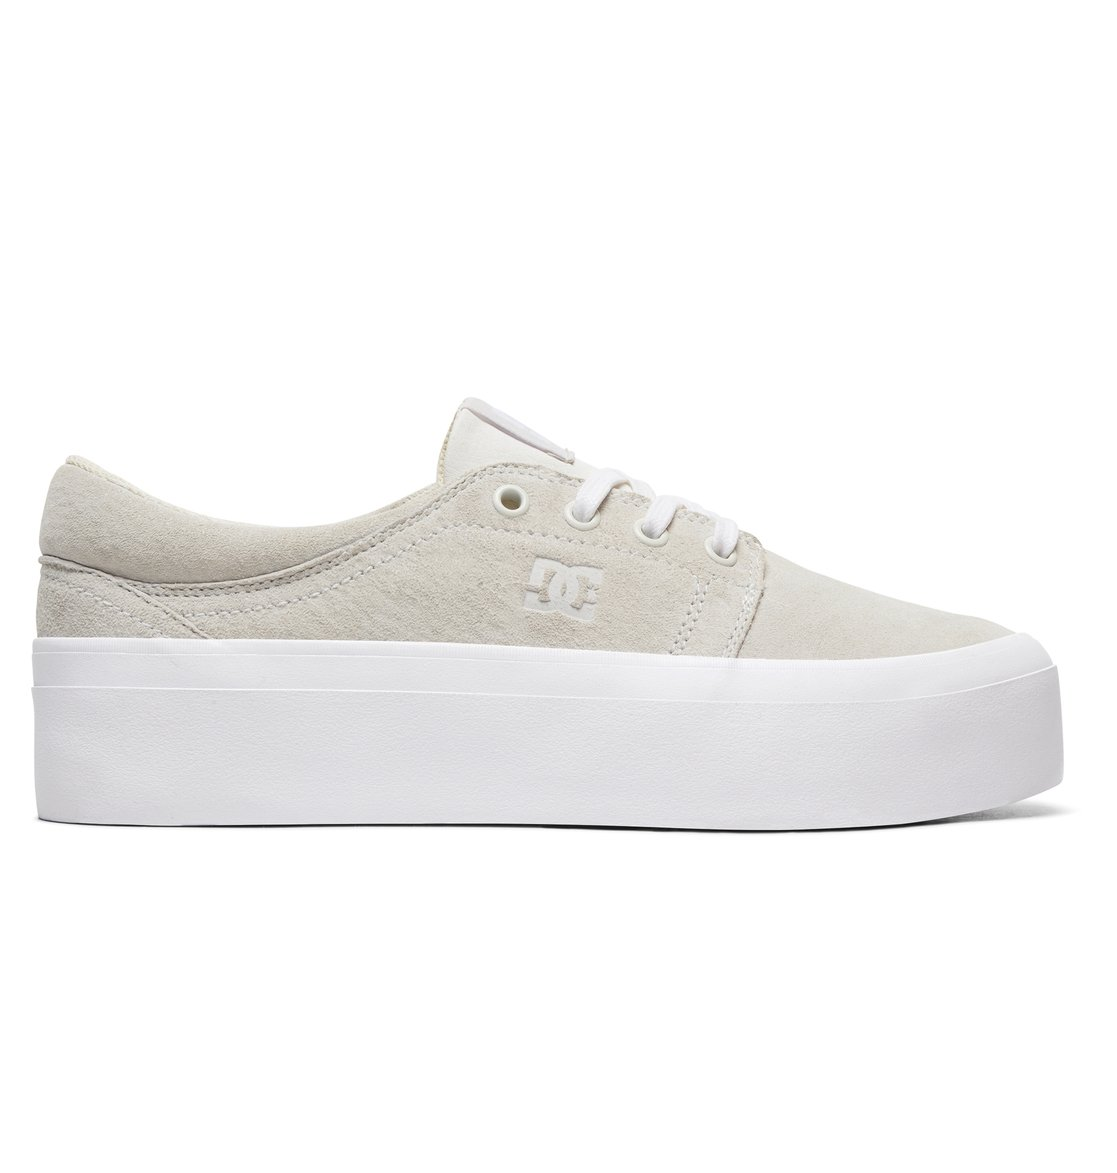 ad70b0a7d4de 0 Women s Trase Platform LE Shoes White ADJS300218 DC Shoes